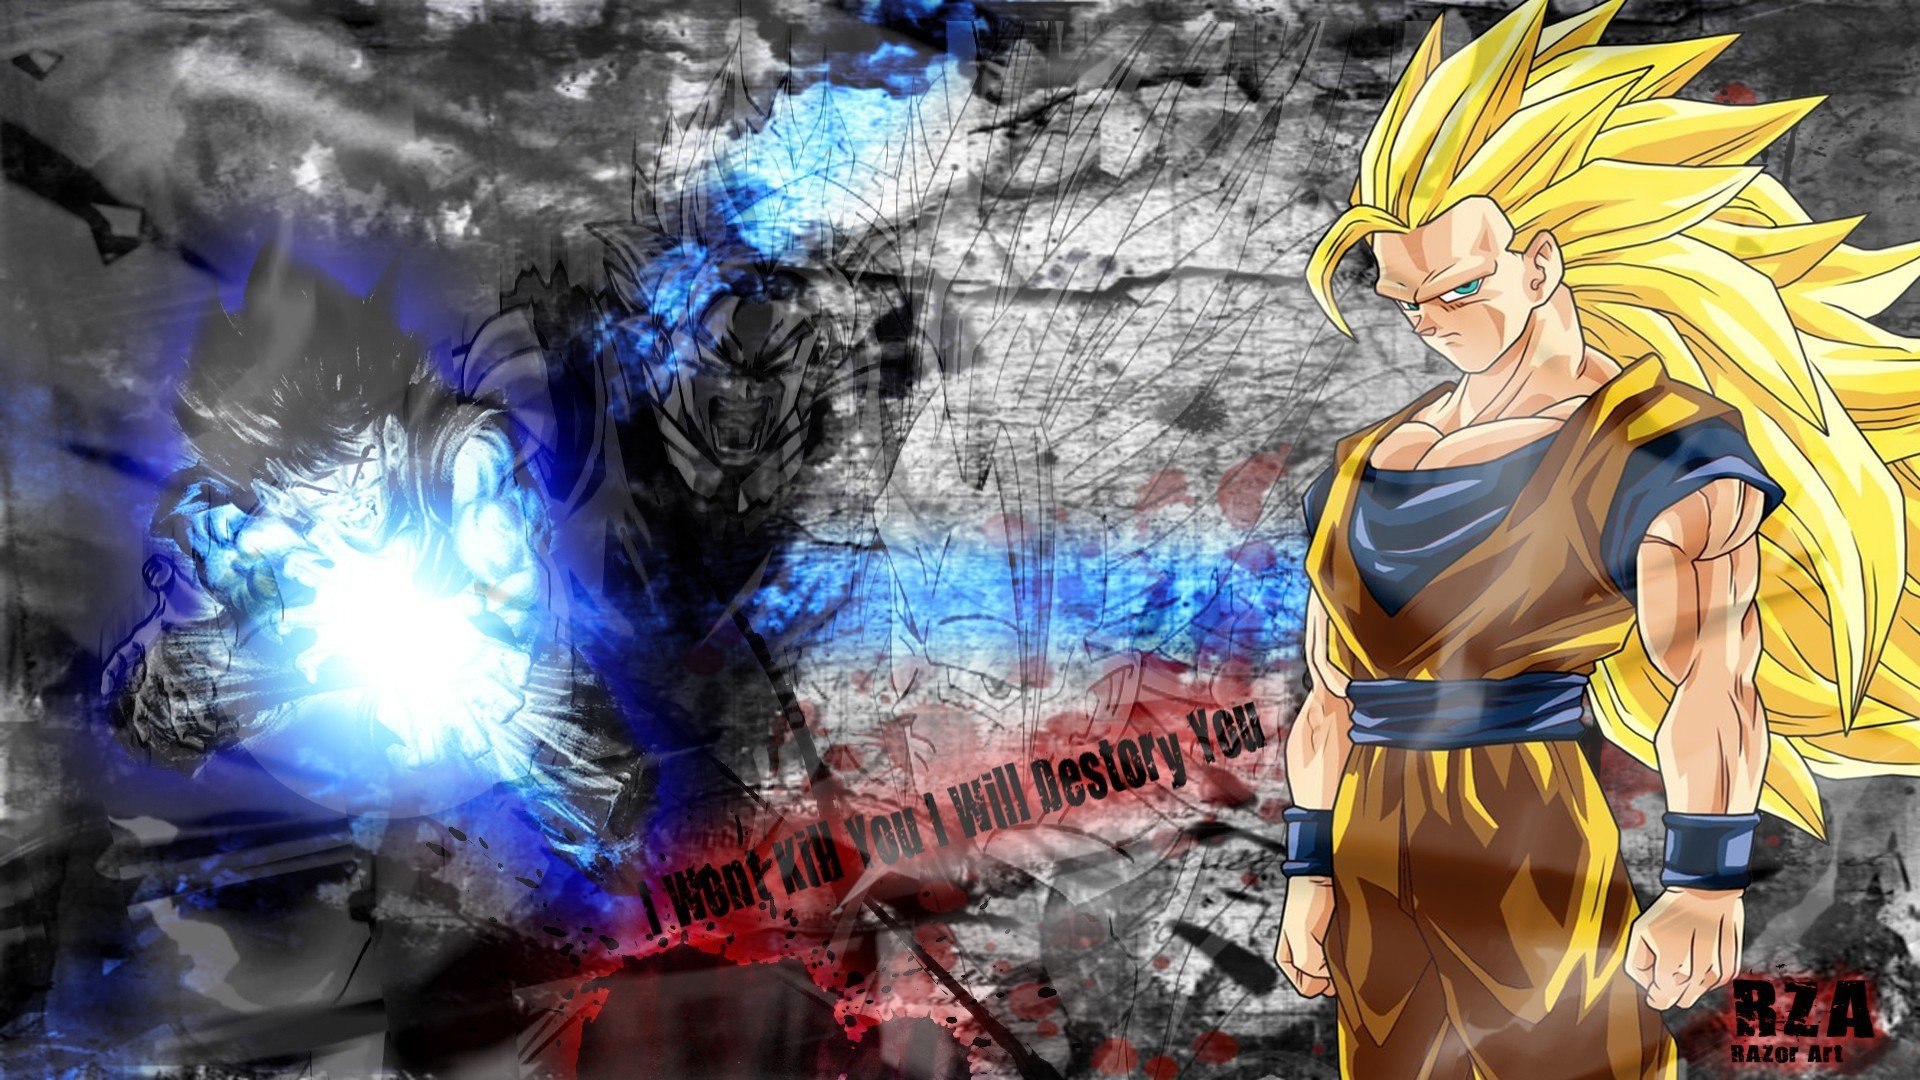 epic dbz wallpapers high resolution - wallpapersafari